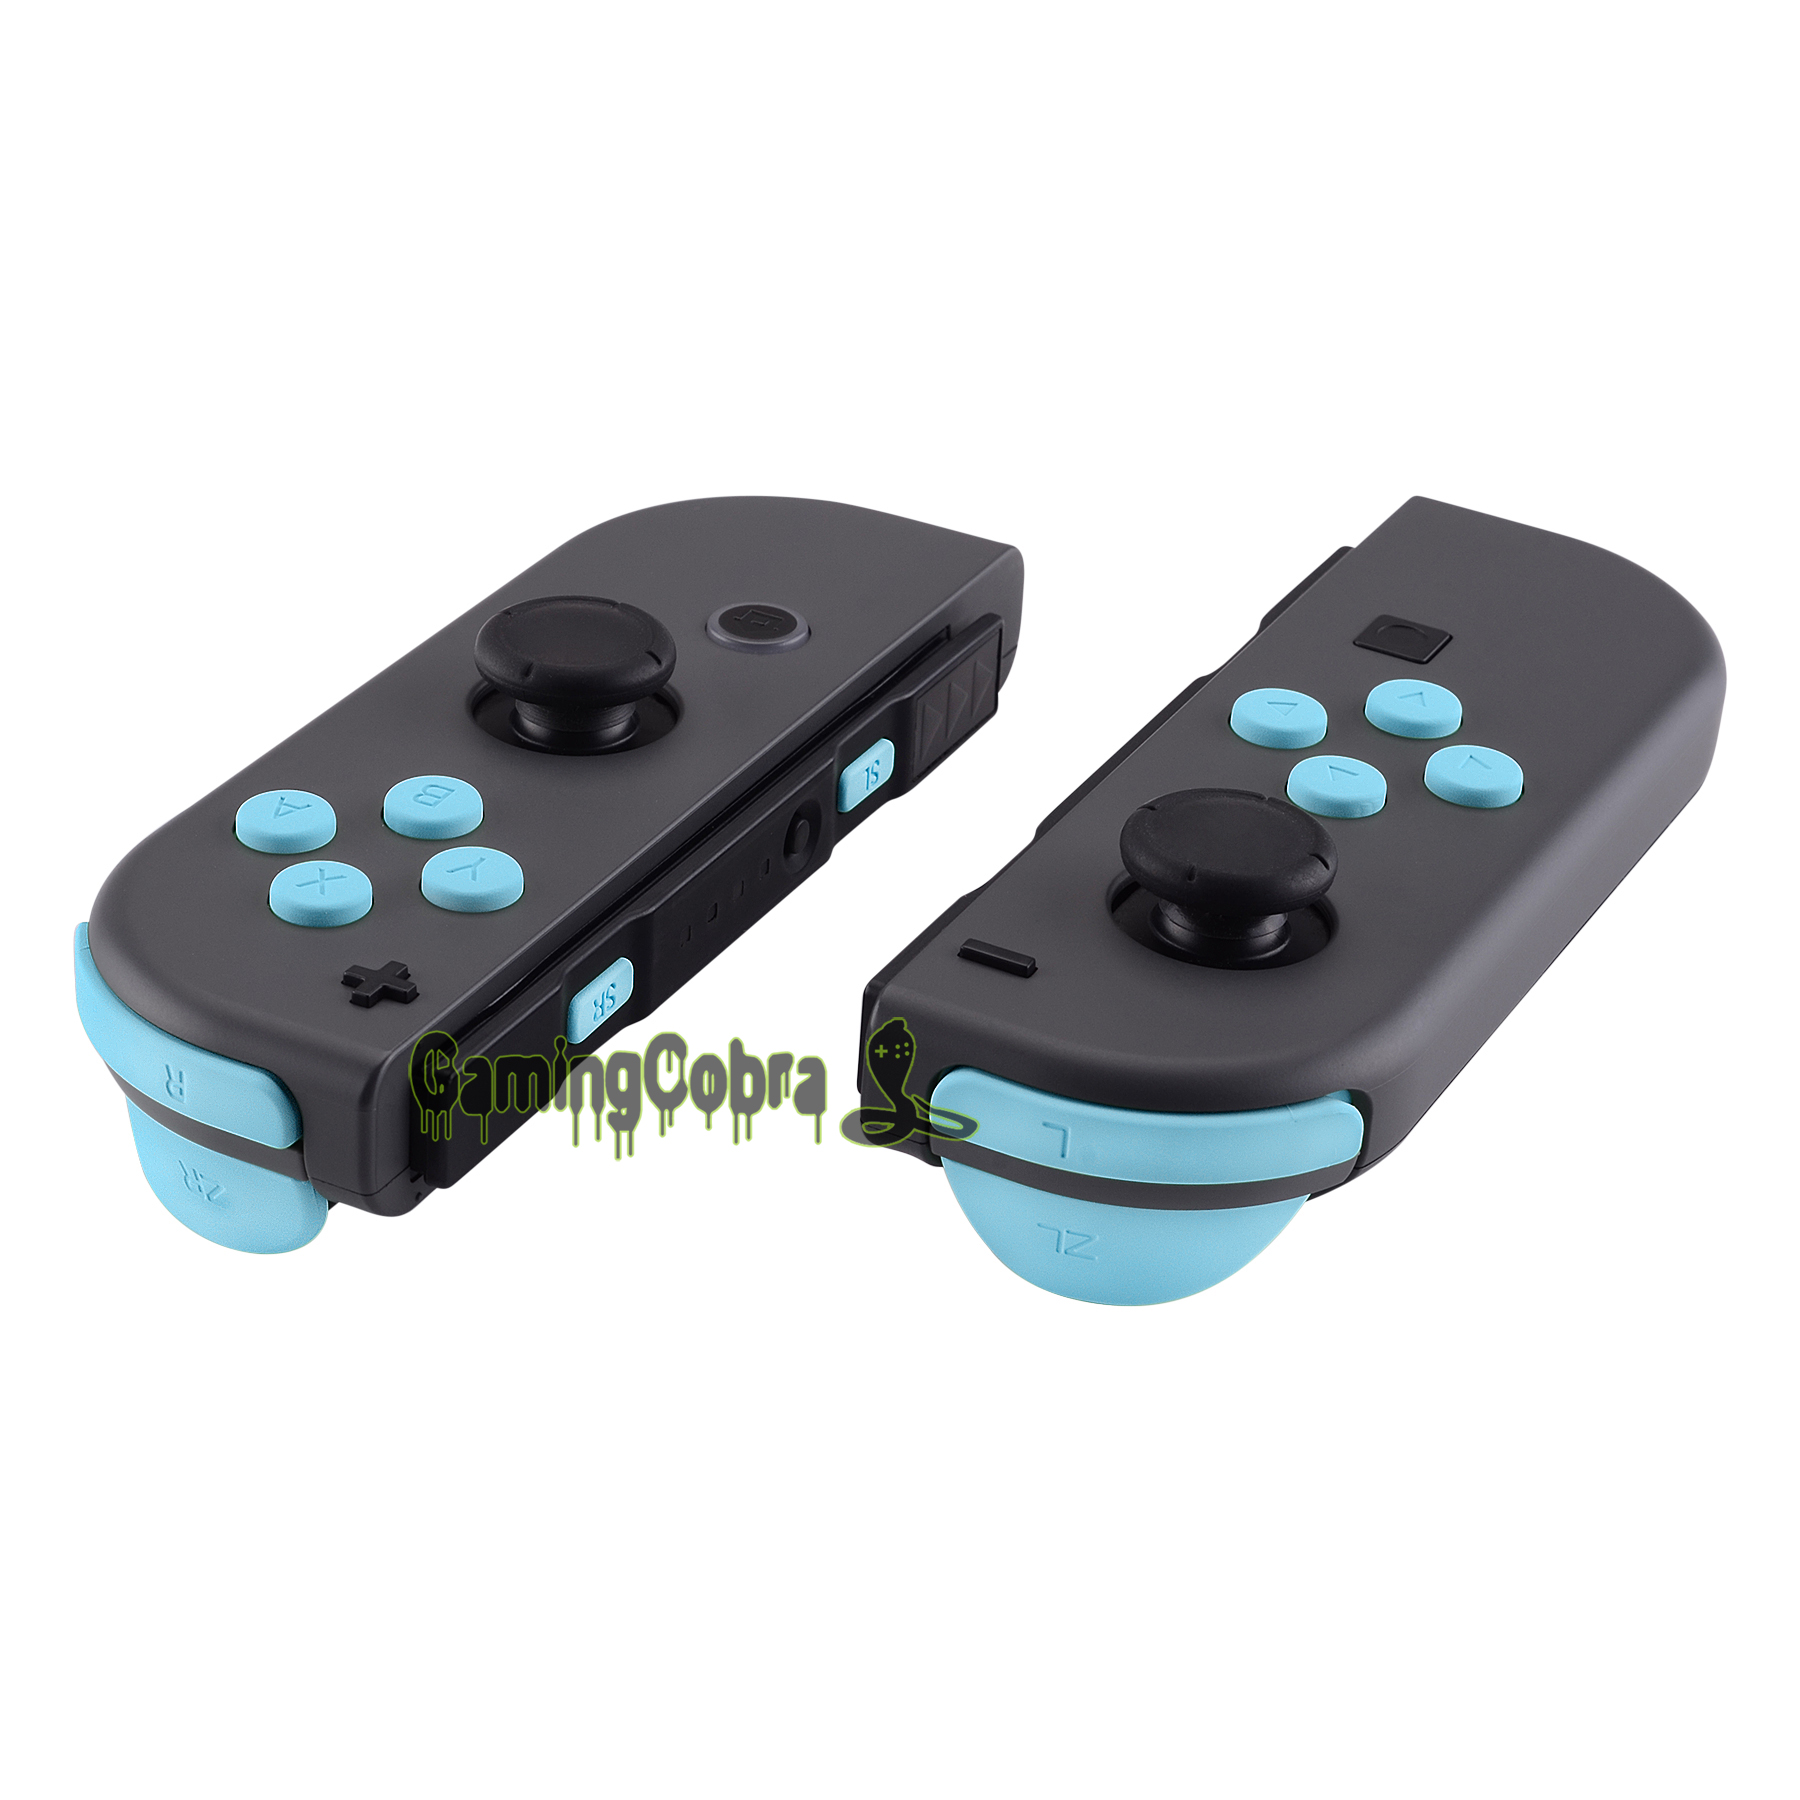 Soft Touch Heaven Blue Repair ABXY Direction Keys SR SL L R ZR ZL Trigger Full Set Buttons W/ Tools For Nintendo Switch Joy-Con